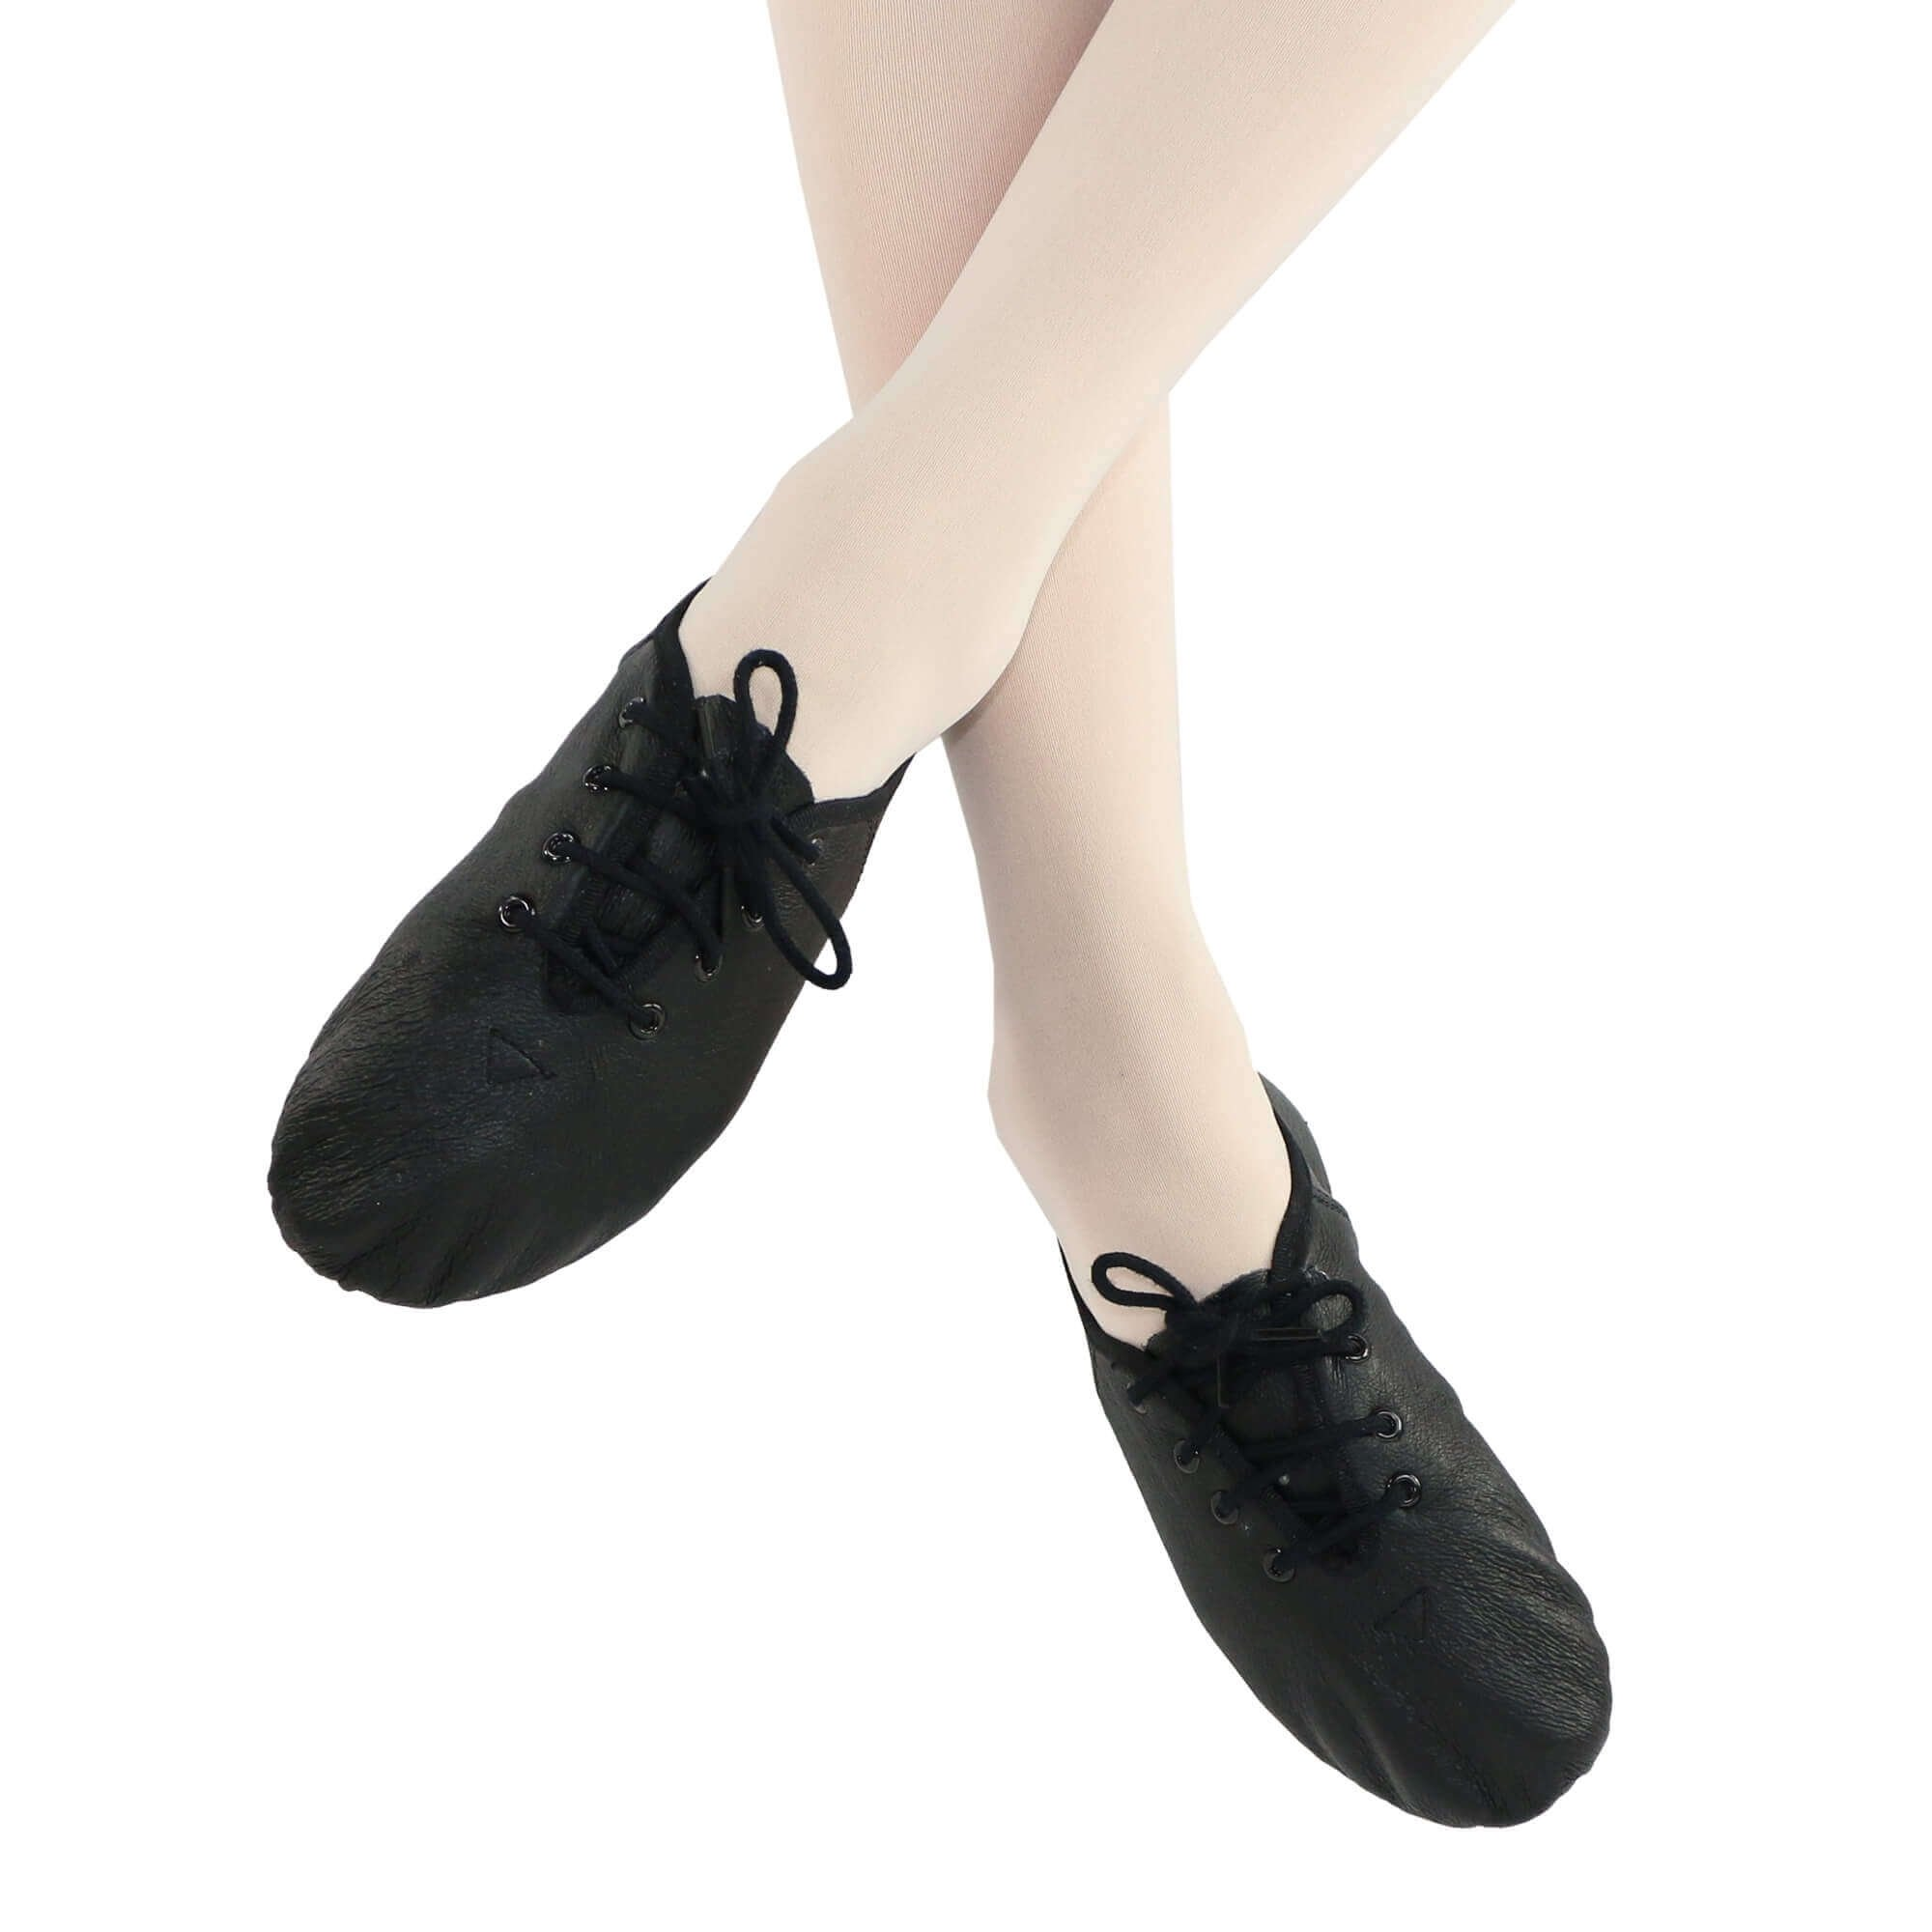 Danzcue Womens Black Leather Lace up Jazz Shoes, 8 M US by Danzcue (Image #2)